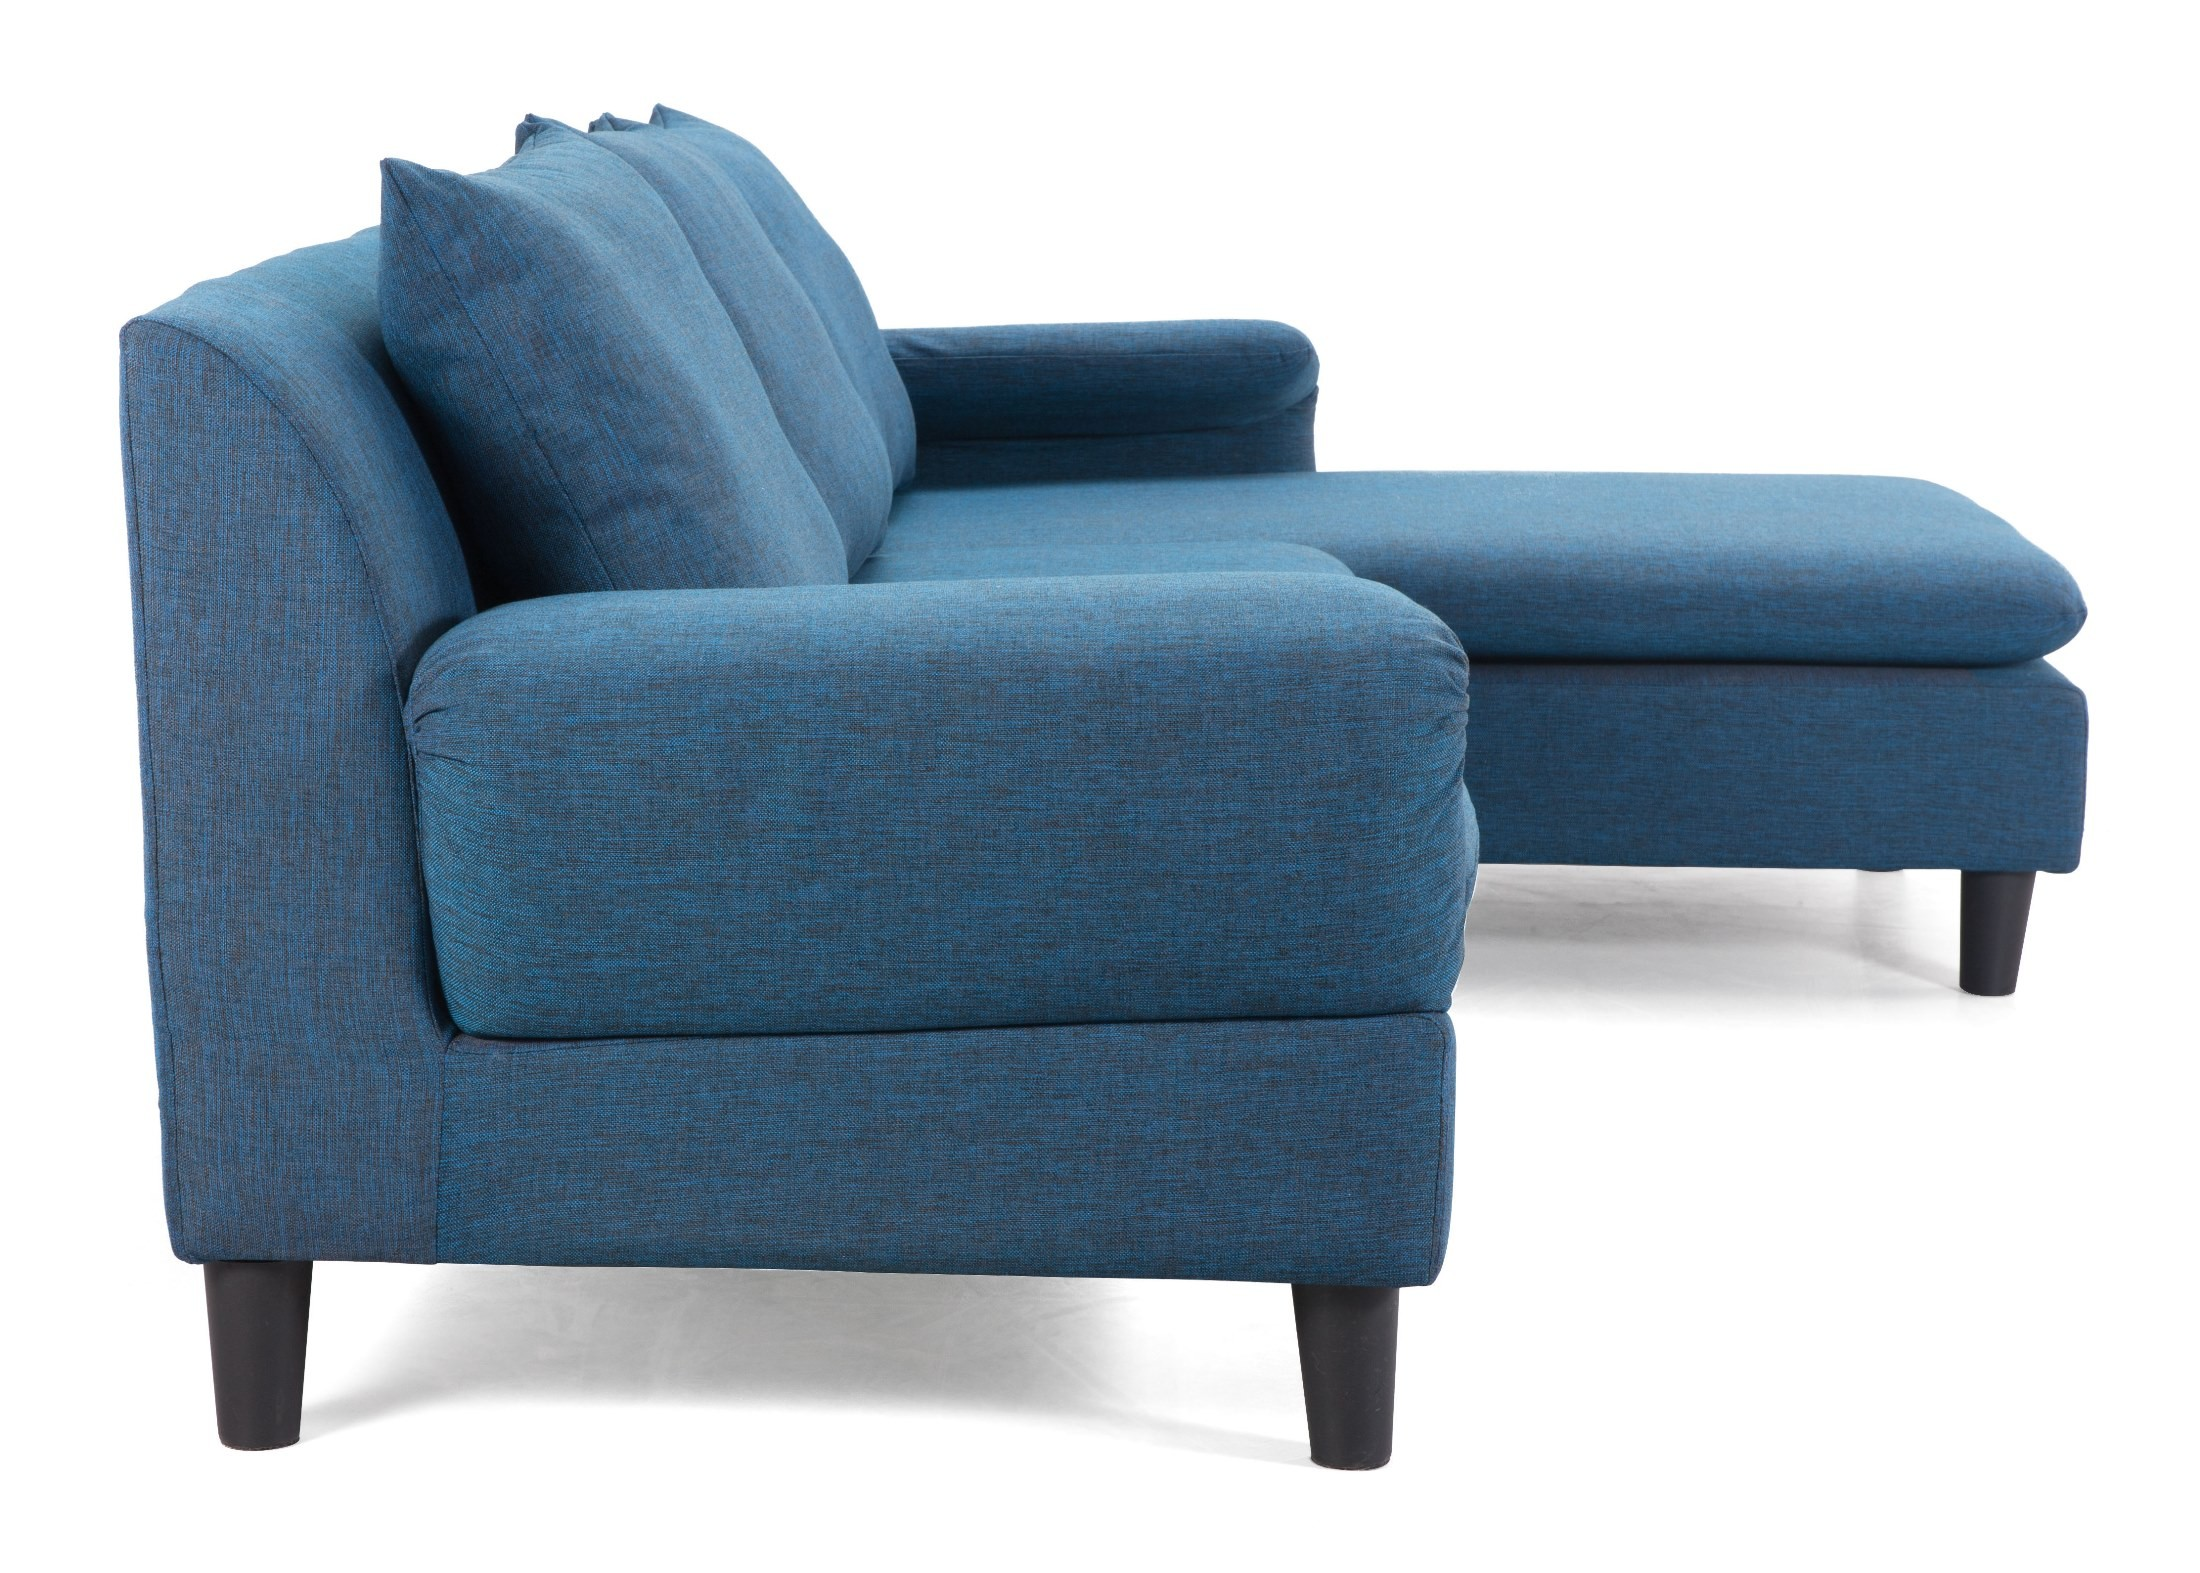 Axiom cowboy blue sofa from zuo mod 900601 coleman Cowboy sofa